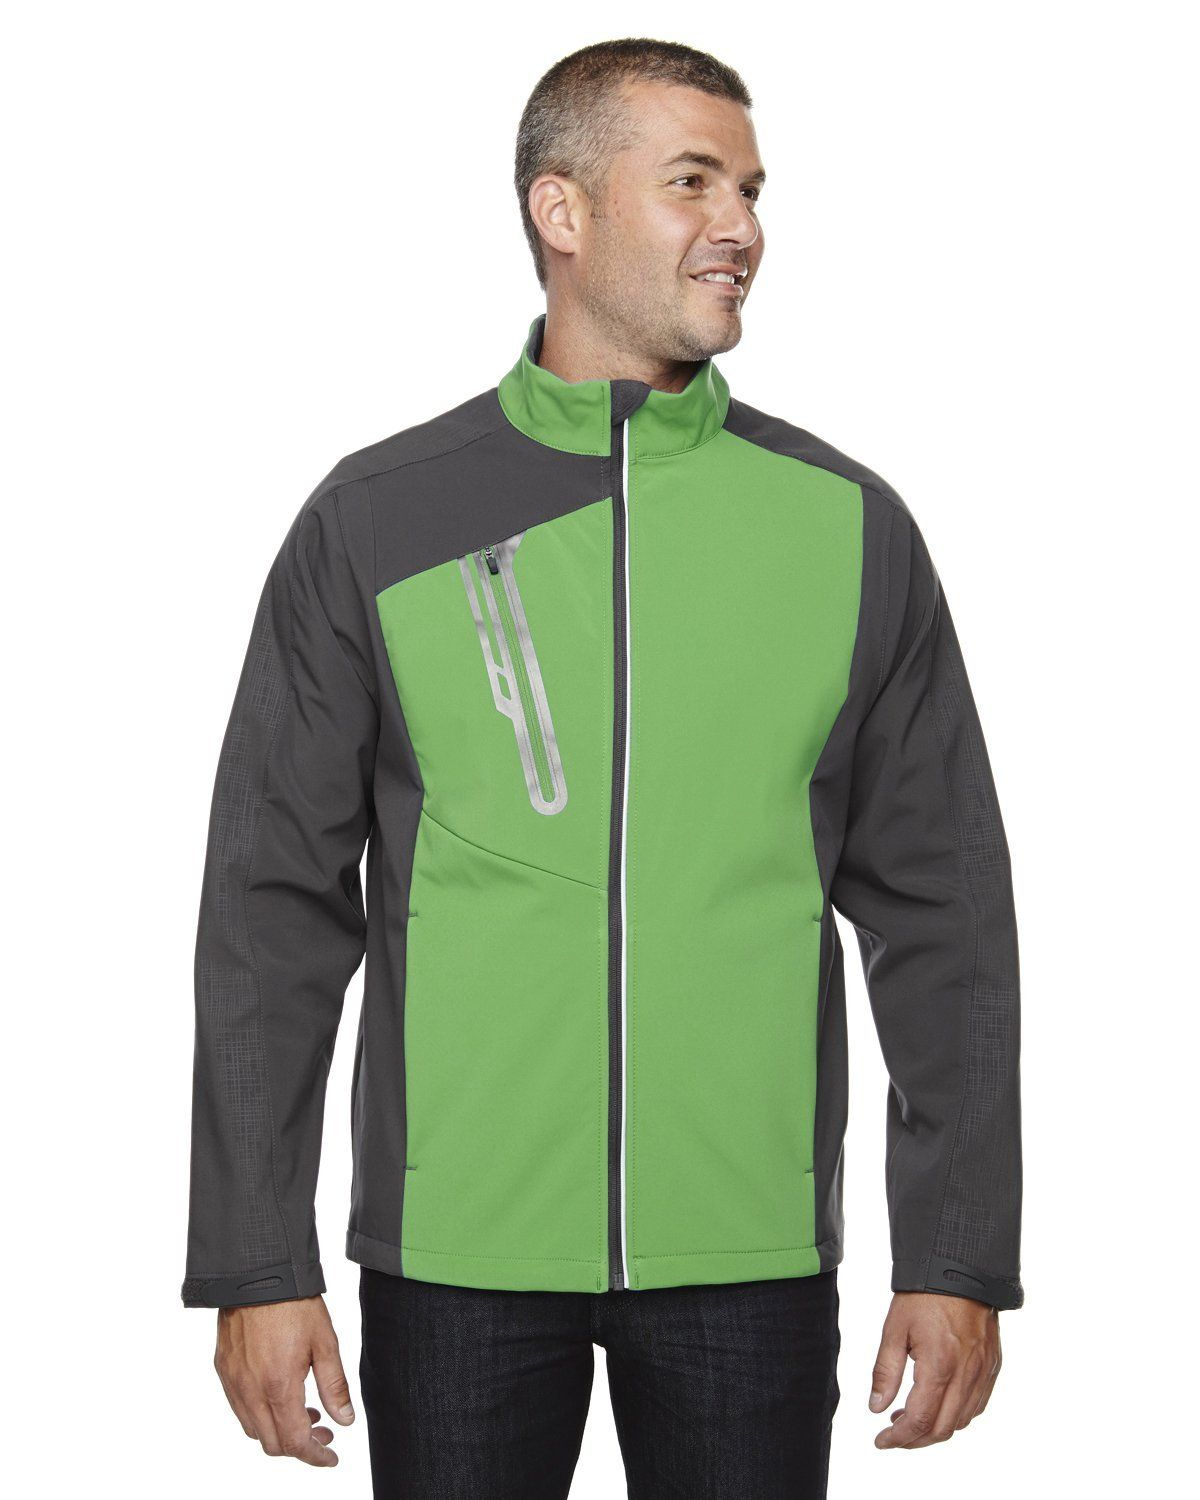 Ash City - North End Men's Terrain Colorblock Soft Shell with Embossed Print 88176 VALLEY GREEN 448